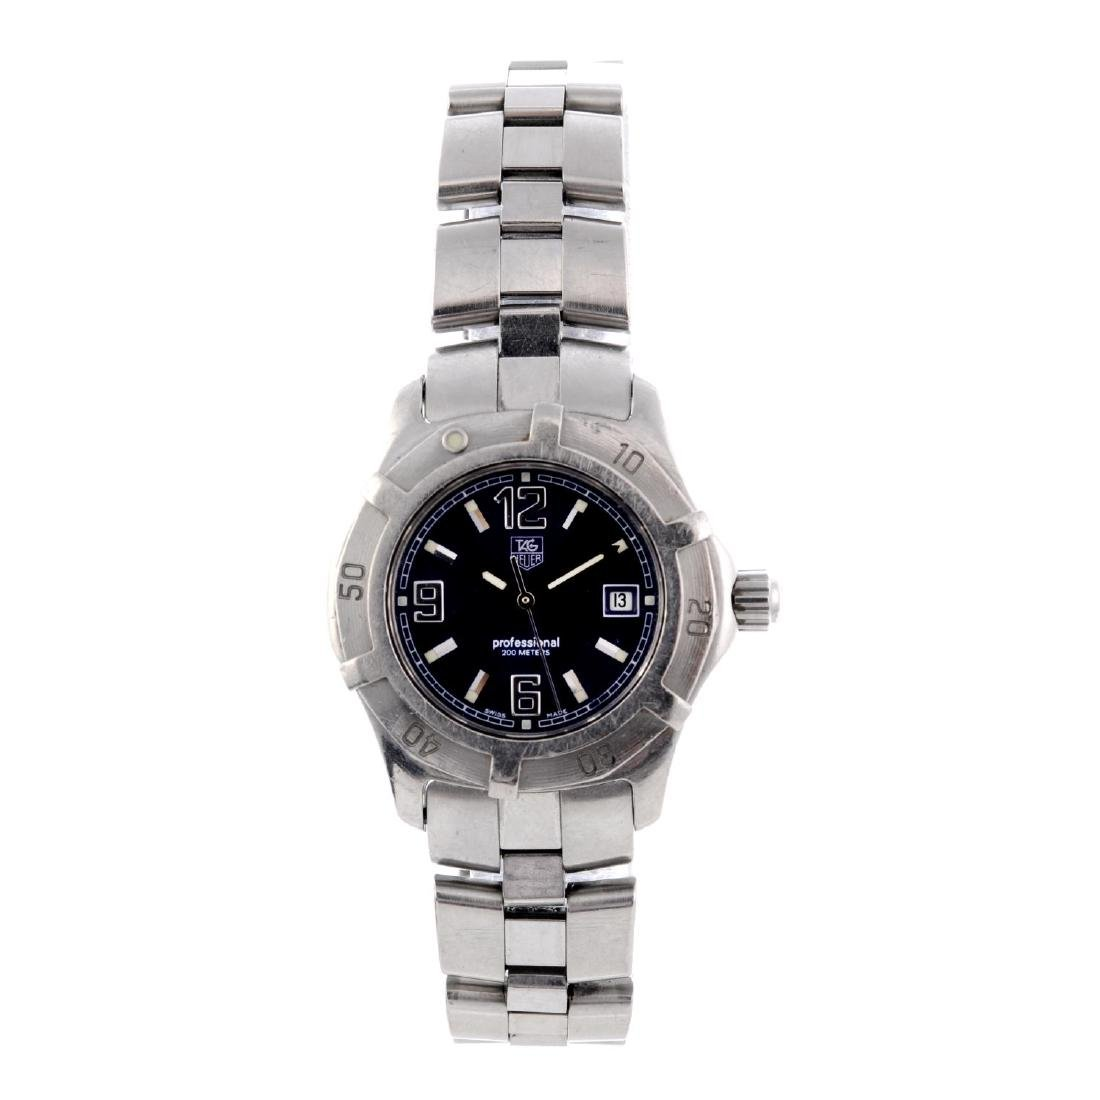 TAG HEUER - a lady's 2000 Exclusive bracelet watch.